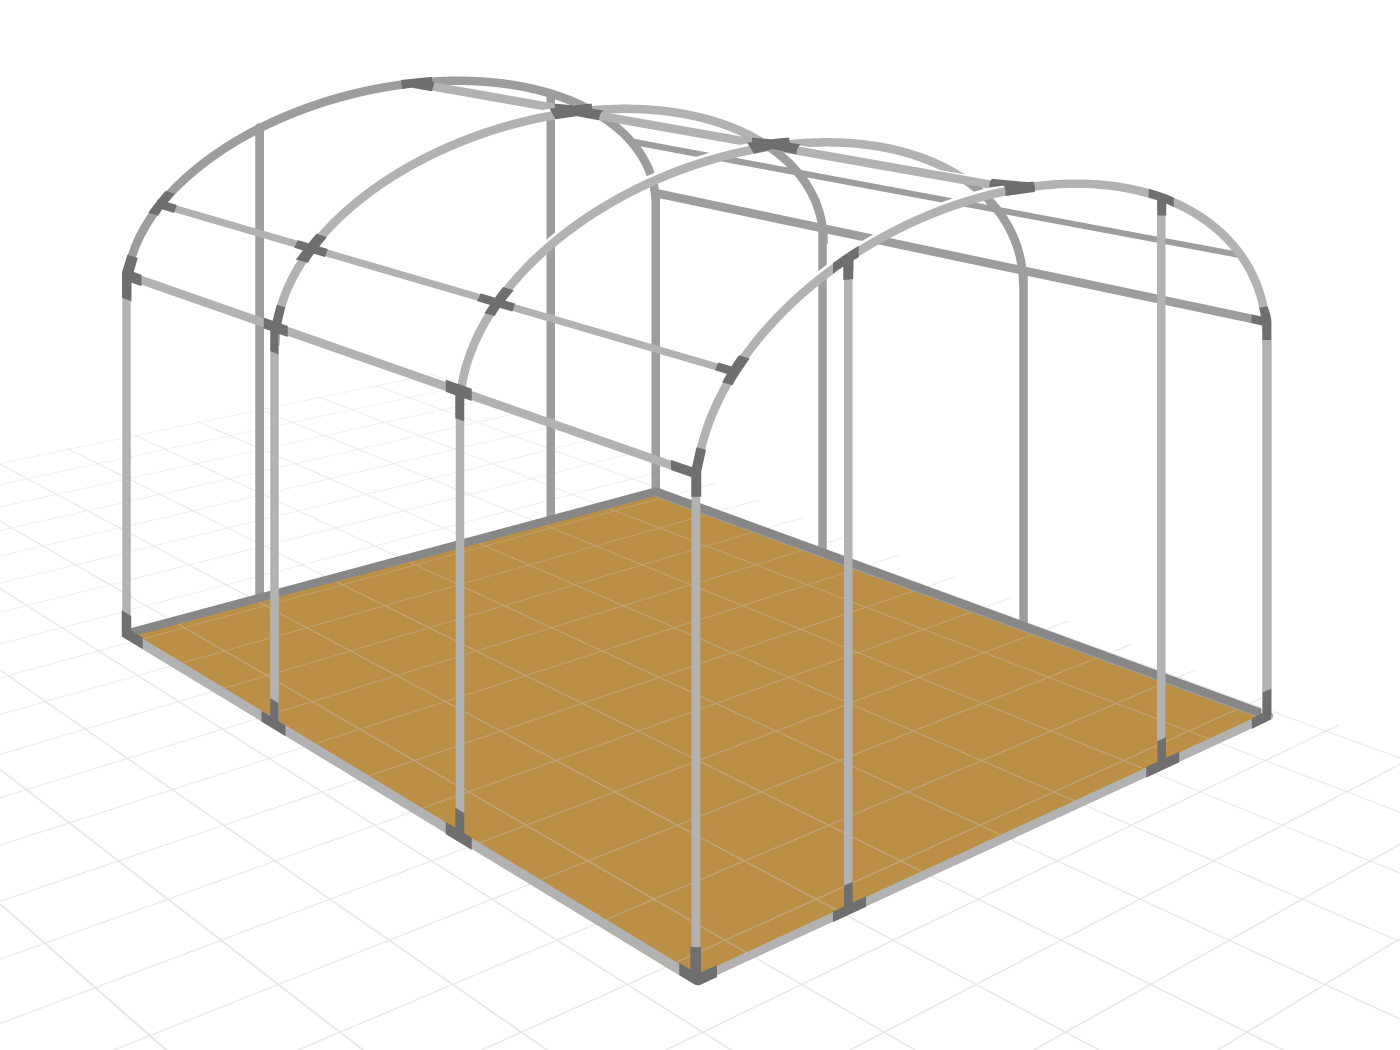 3. Assemble the polytunnel hoops